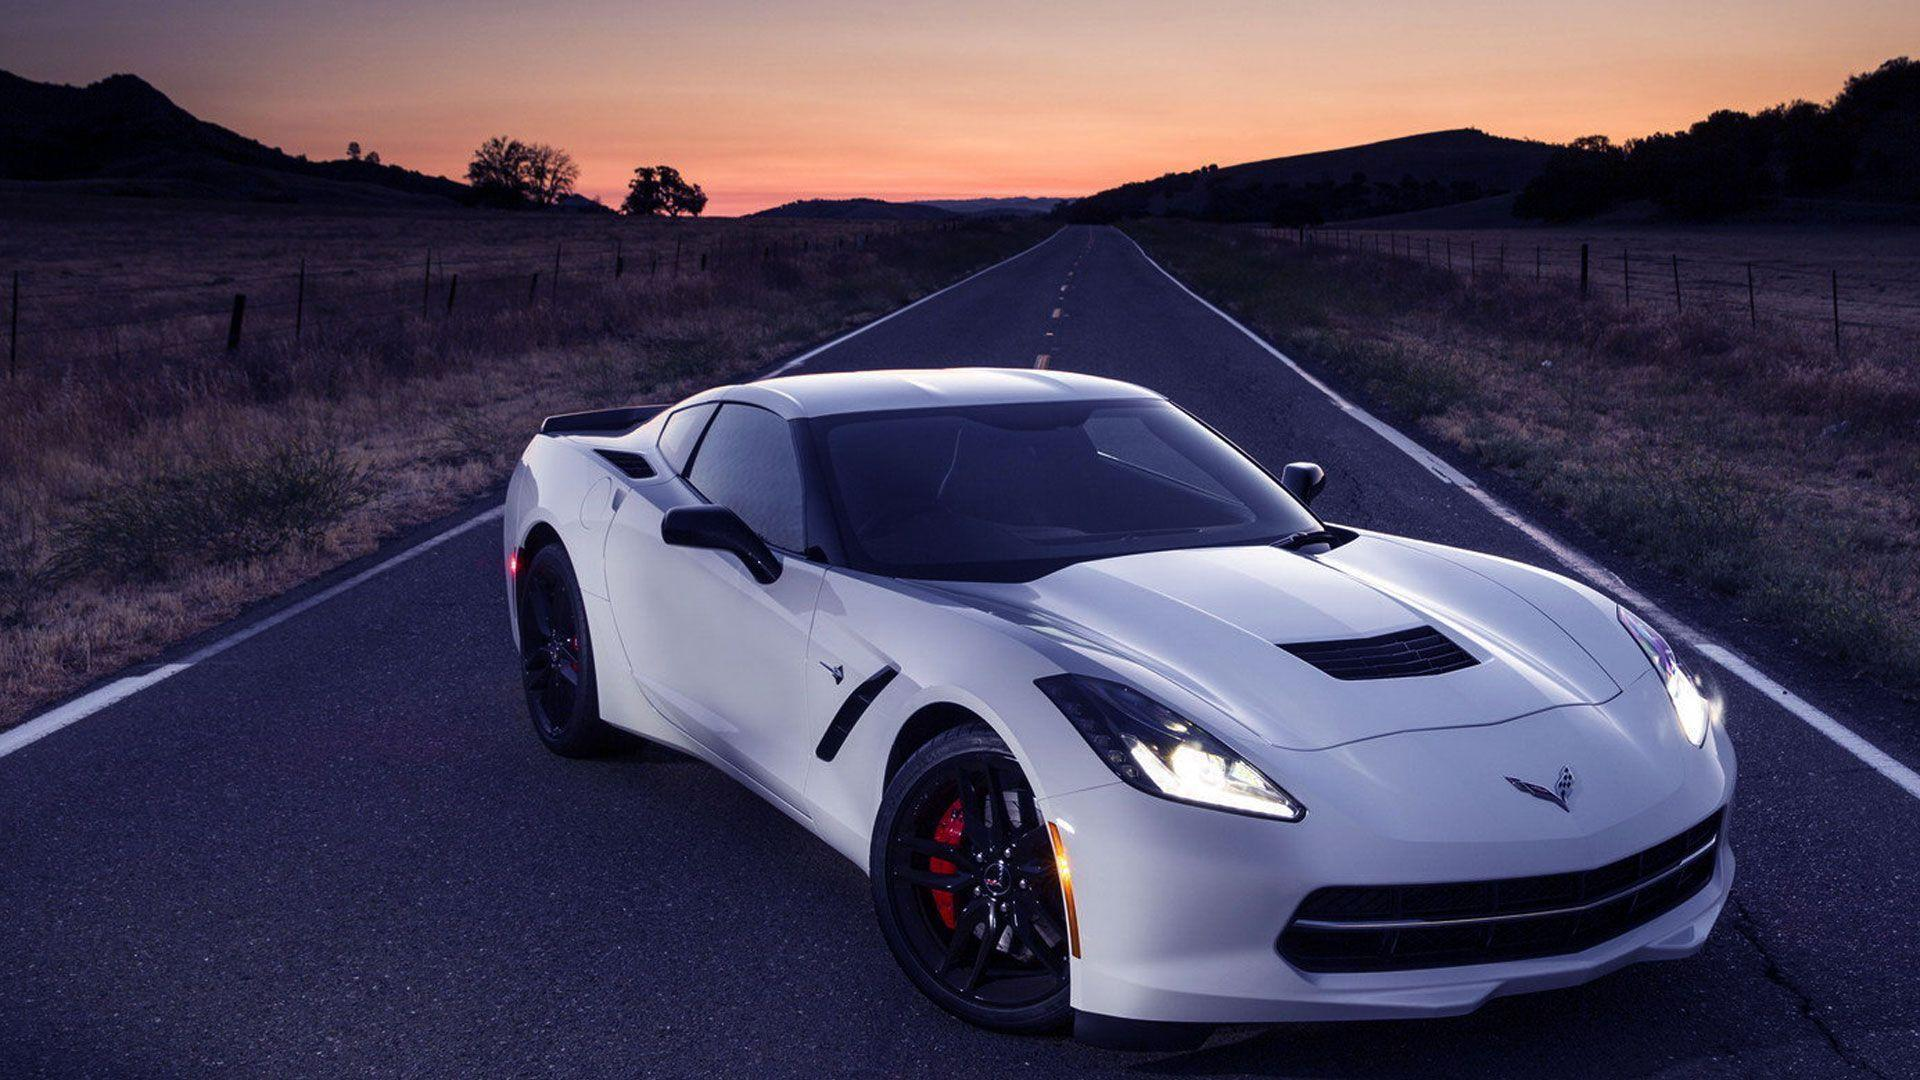 corvette stingray 2015 wallpapers hd wallpaper cave. Black Bedroom Furniture Sets. Home Design Ideas